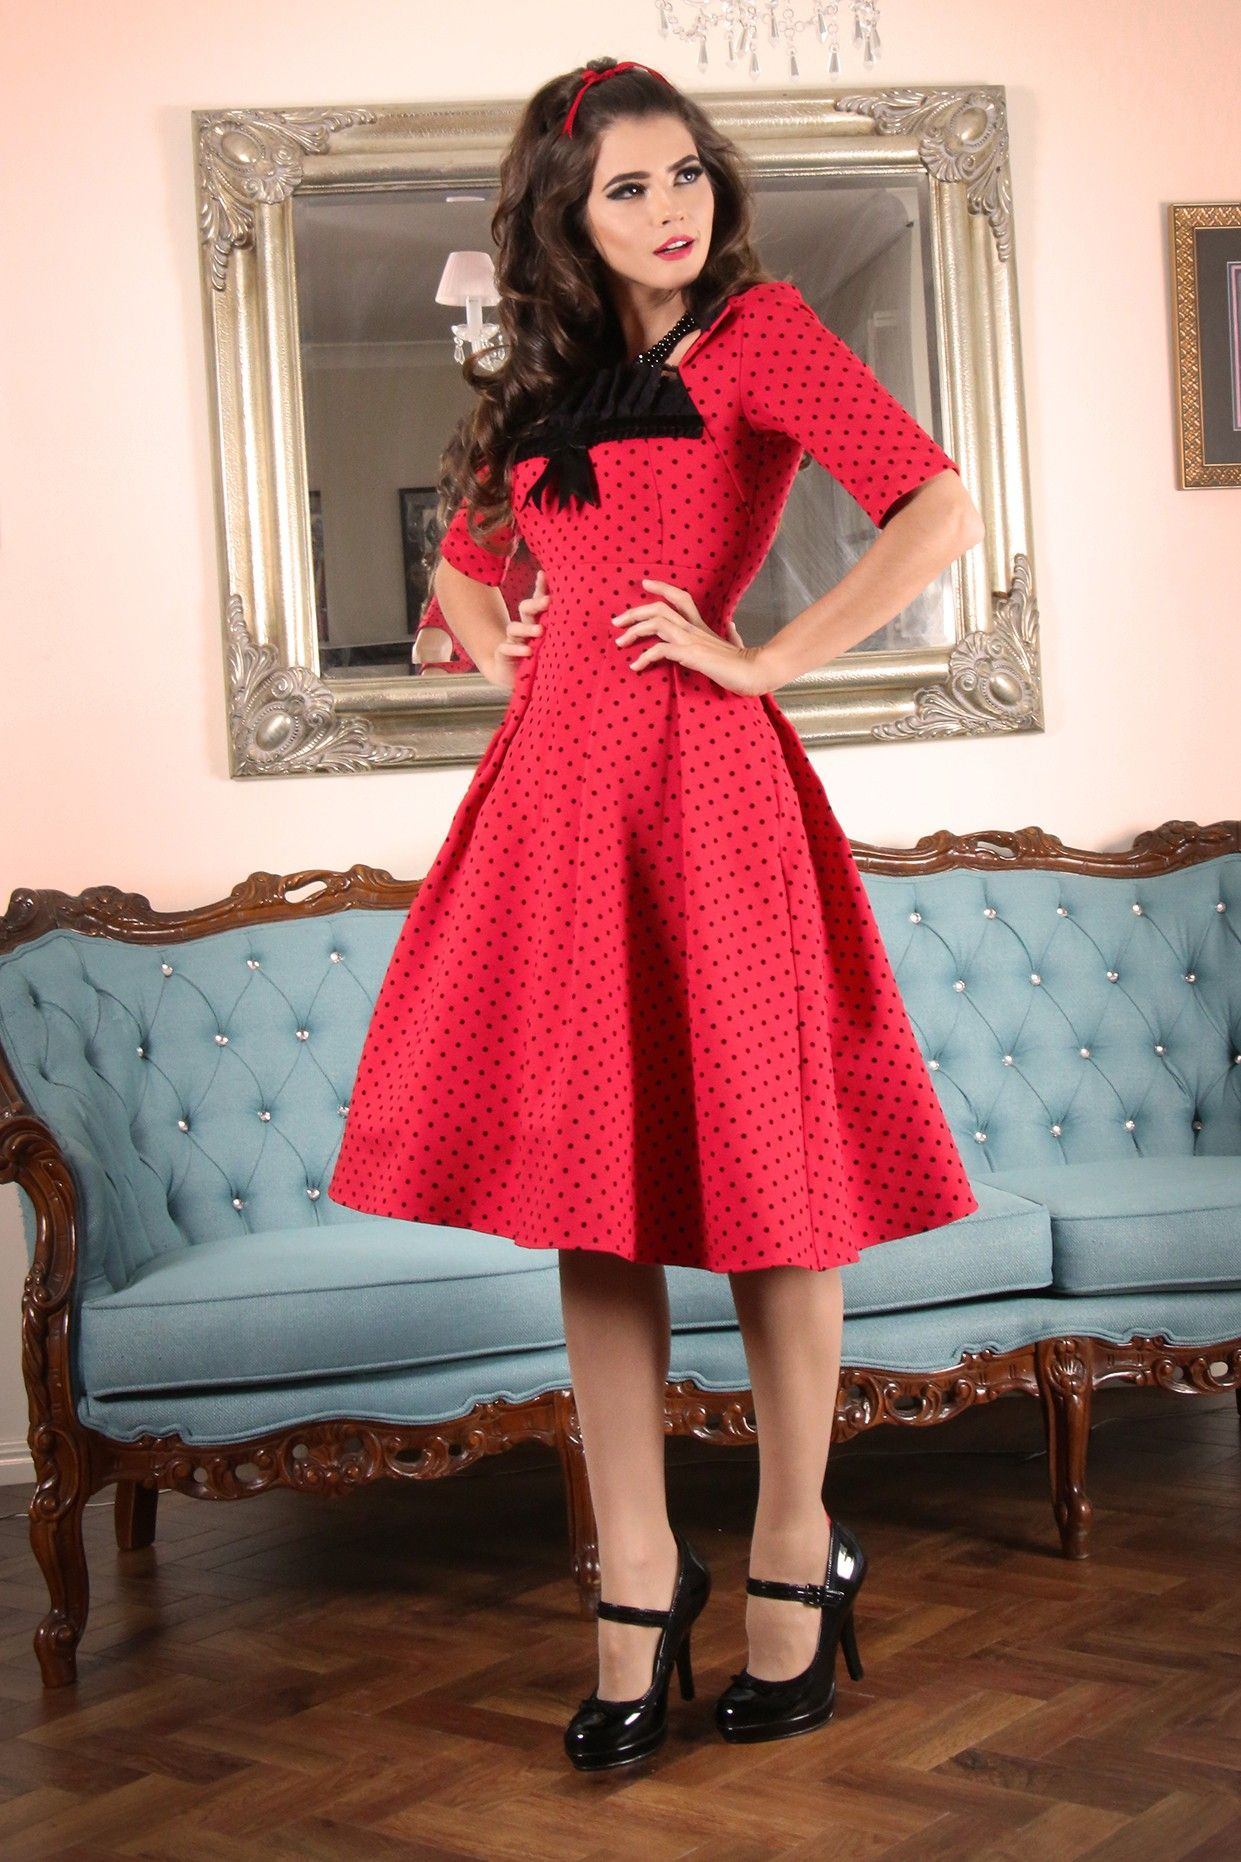 Kitten D Amour Fever Dress New Vintage Pinup Rockabilly Buy Recent Collections Http Www Kittendamour Com Br Fever Dress Pretty Dresses Vintage Dresses